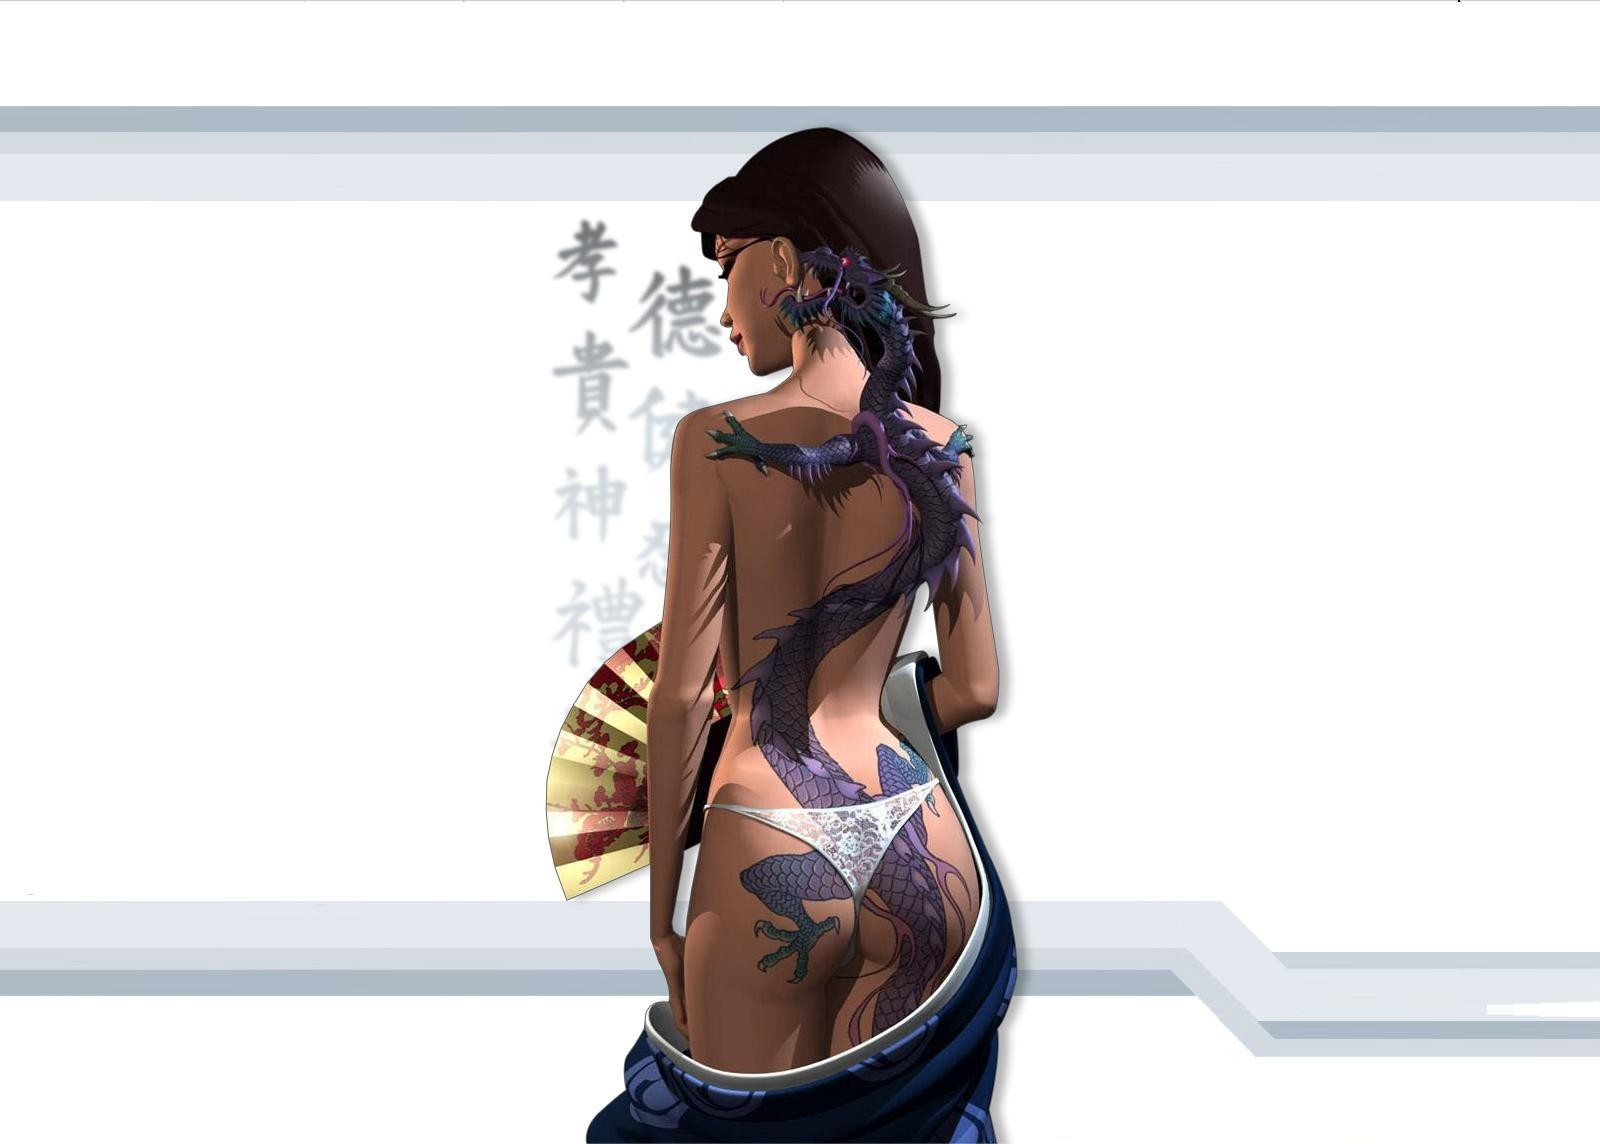 3d screen saver pussy image erotic gallery